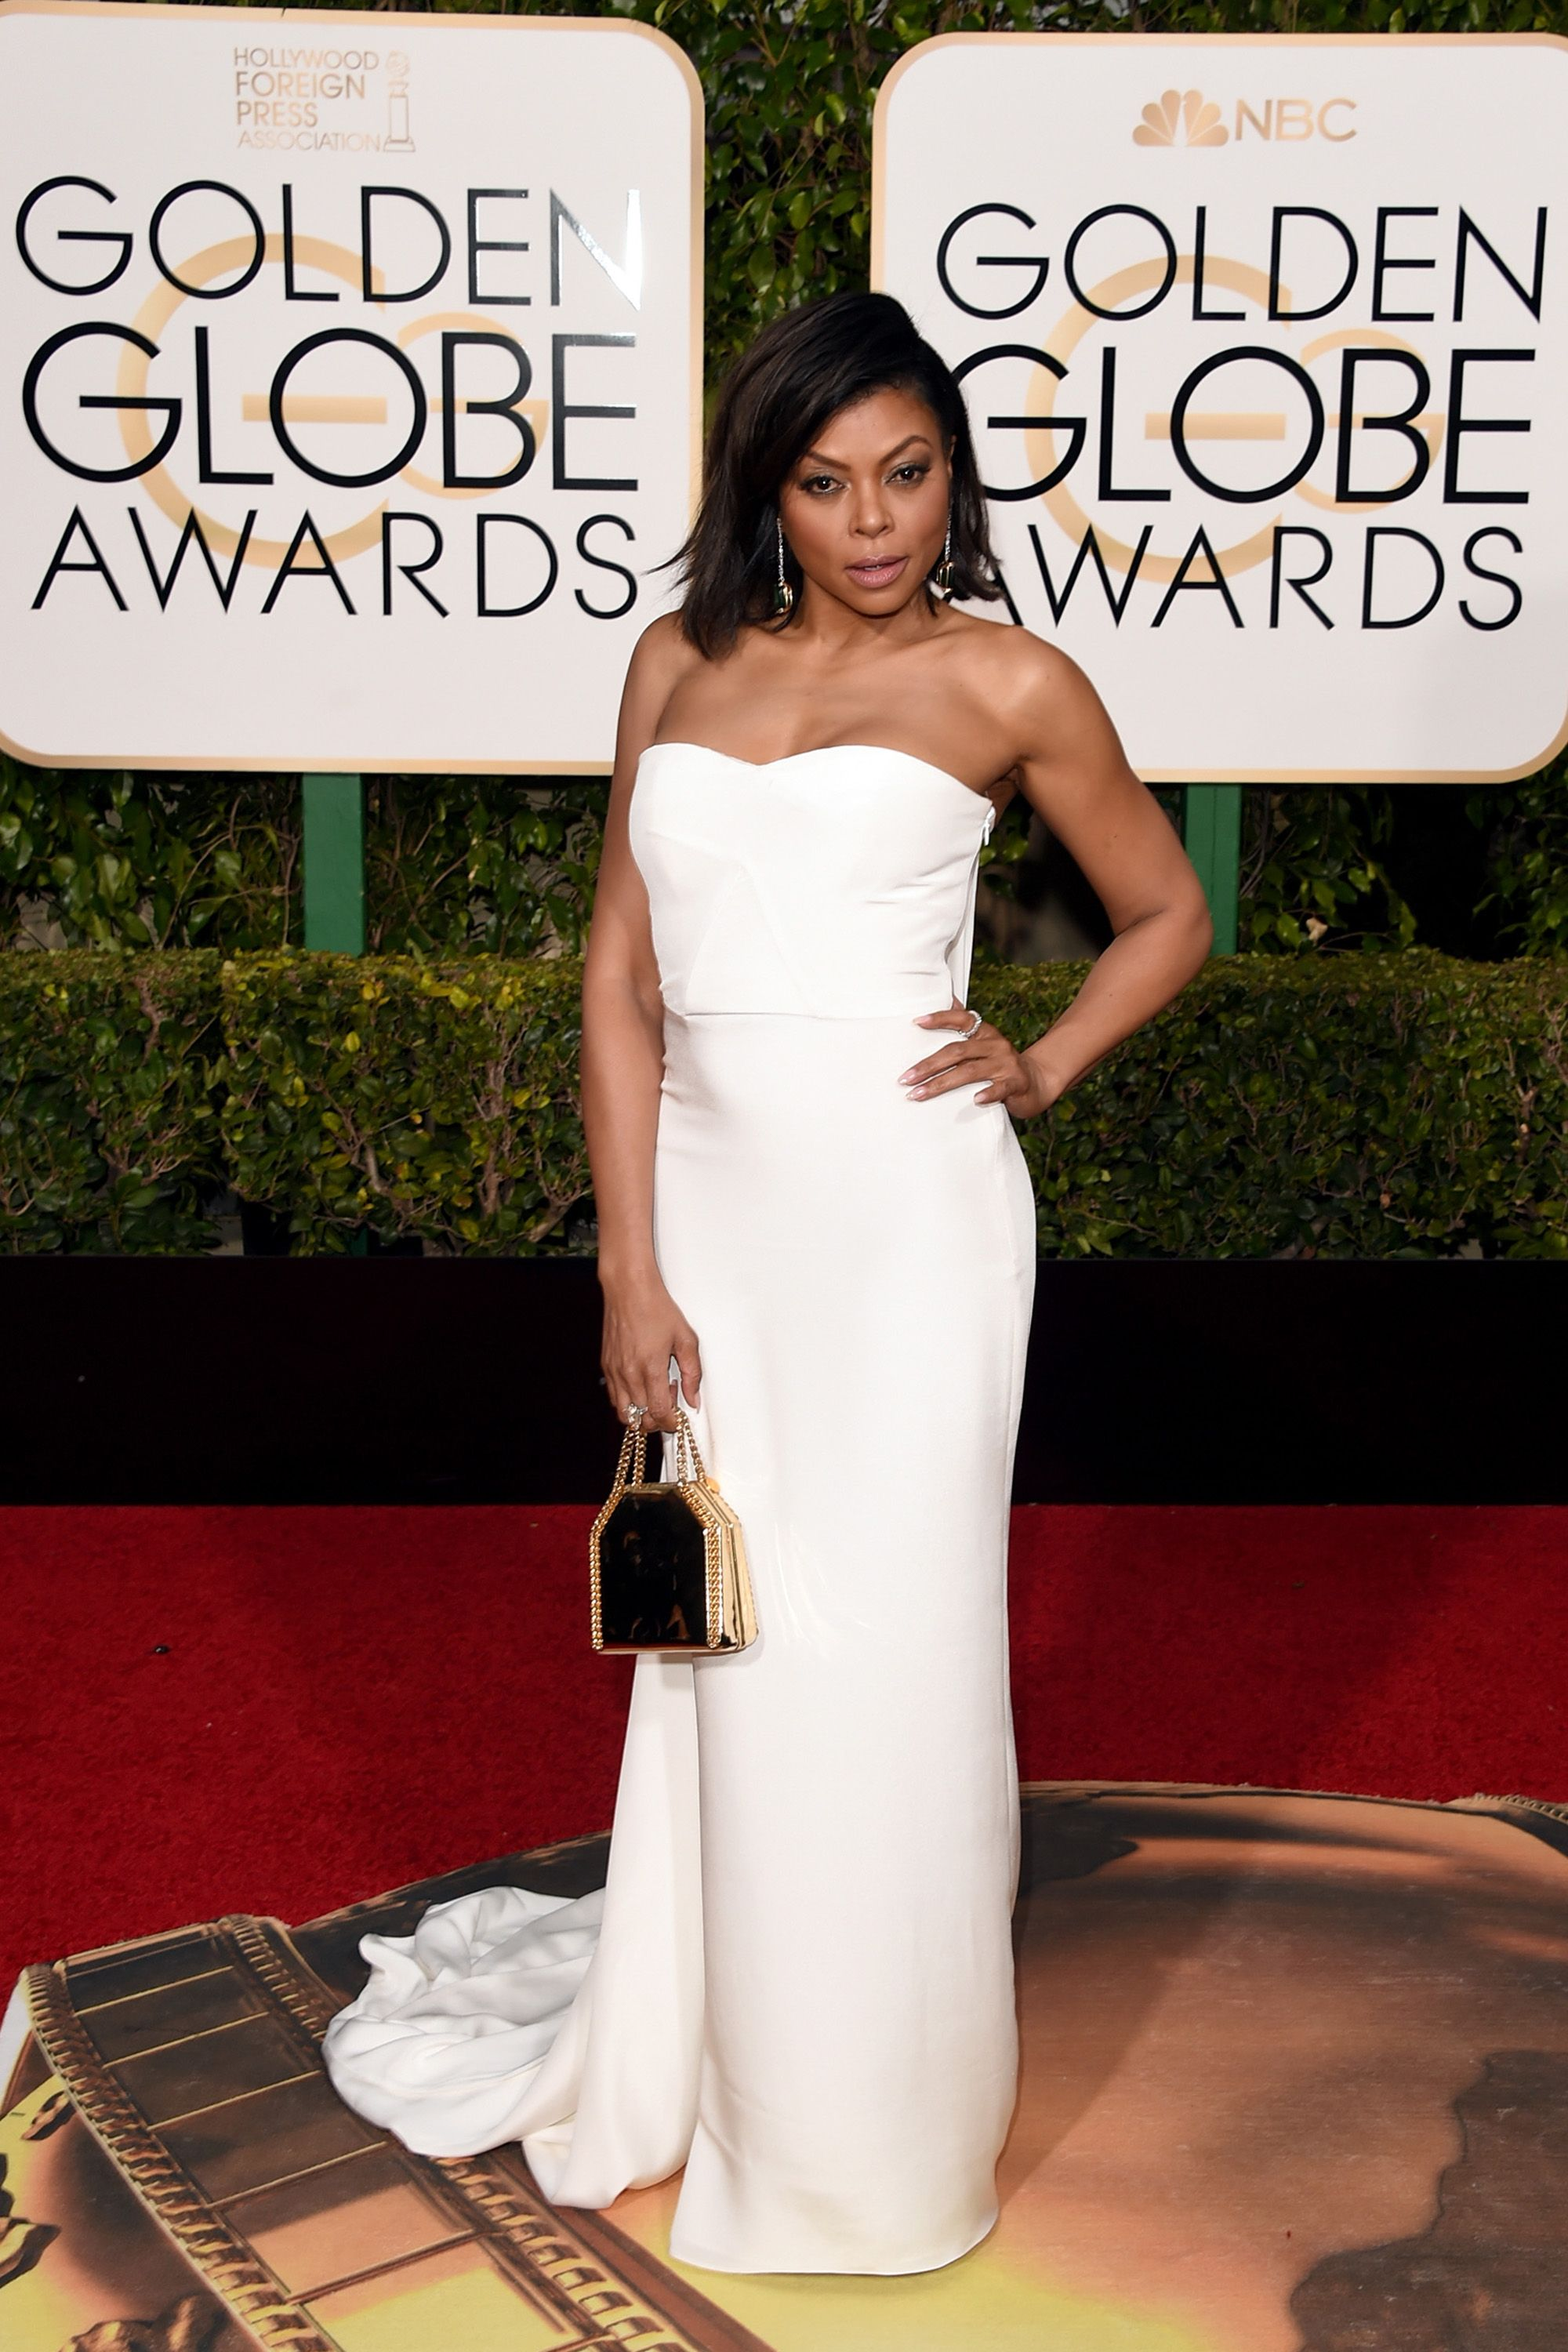 a47dcc7ca82c Golden Globes Red Carpet 2016 - Pictures from 2016 Golden Globes Red Carpet